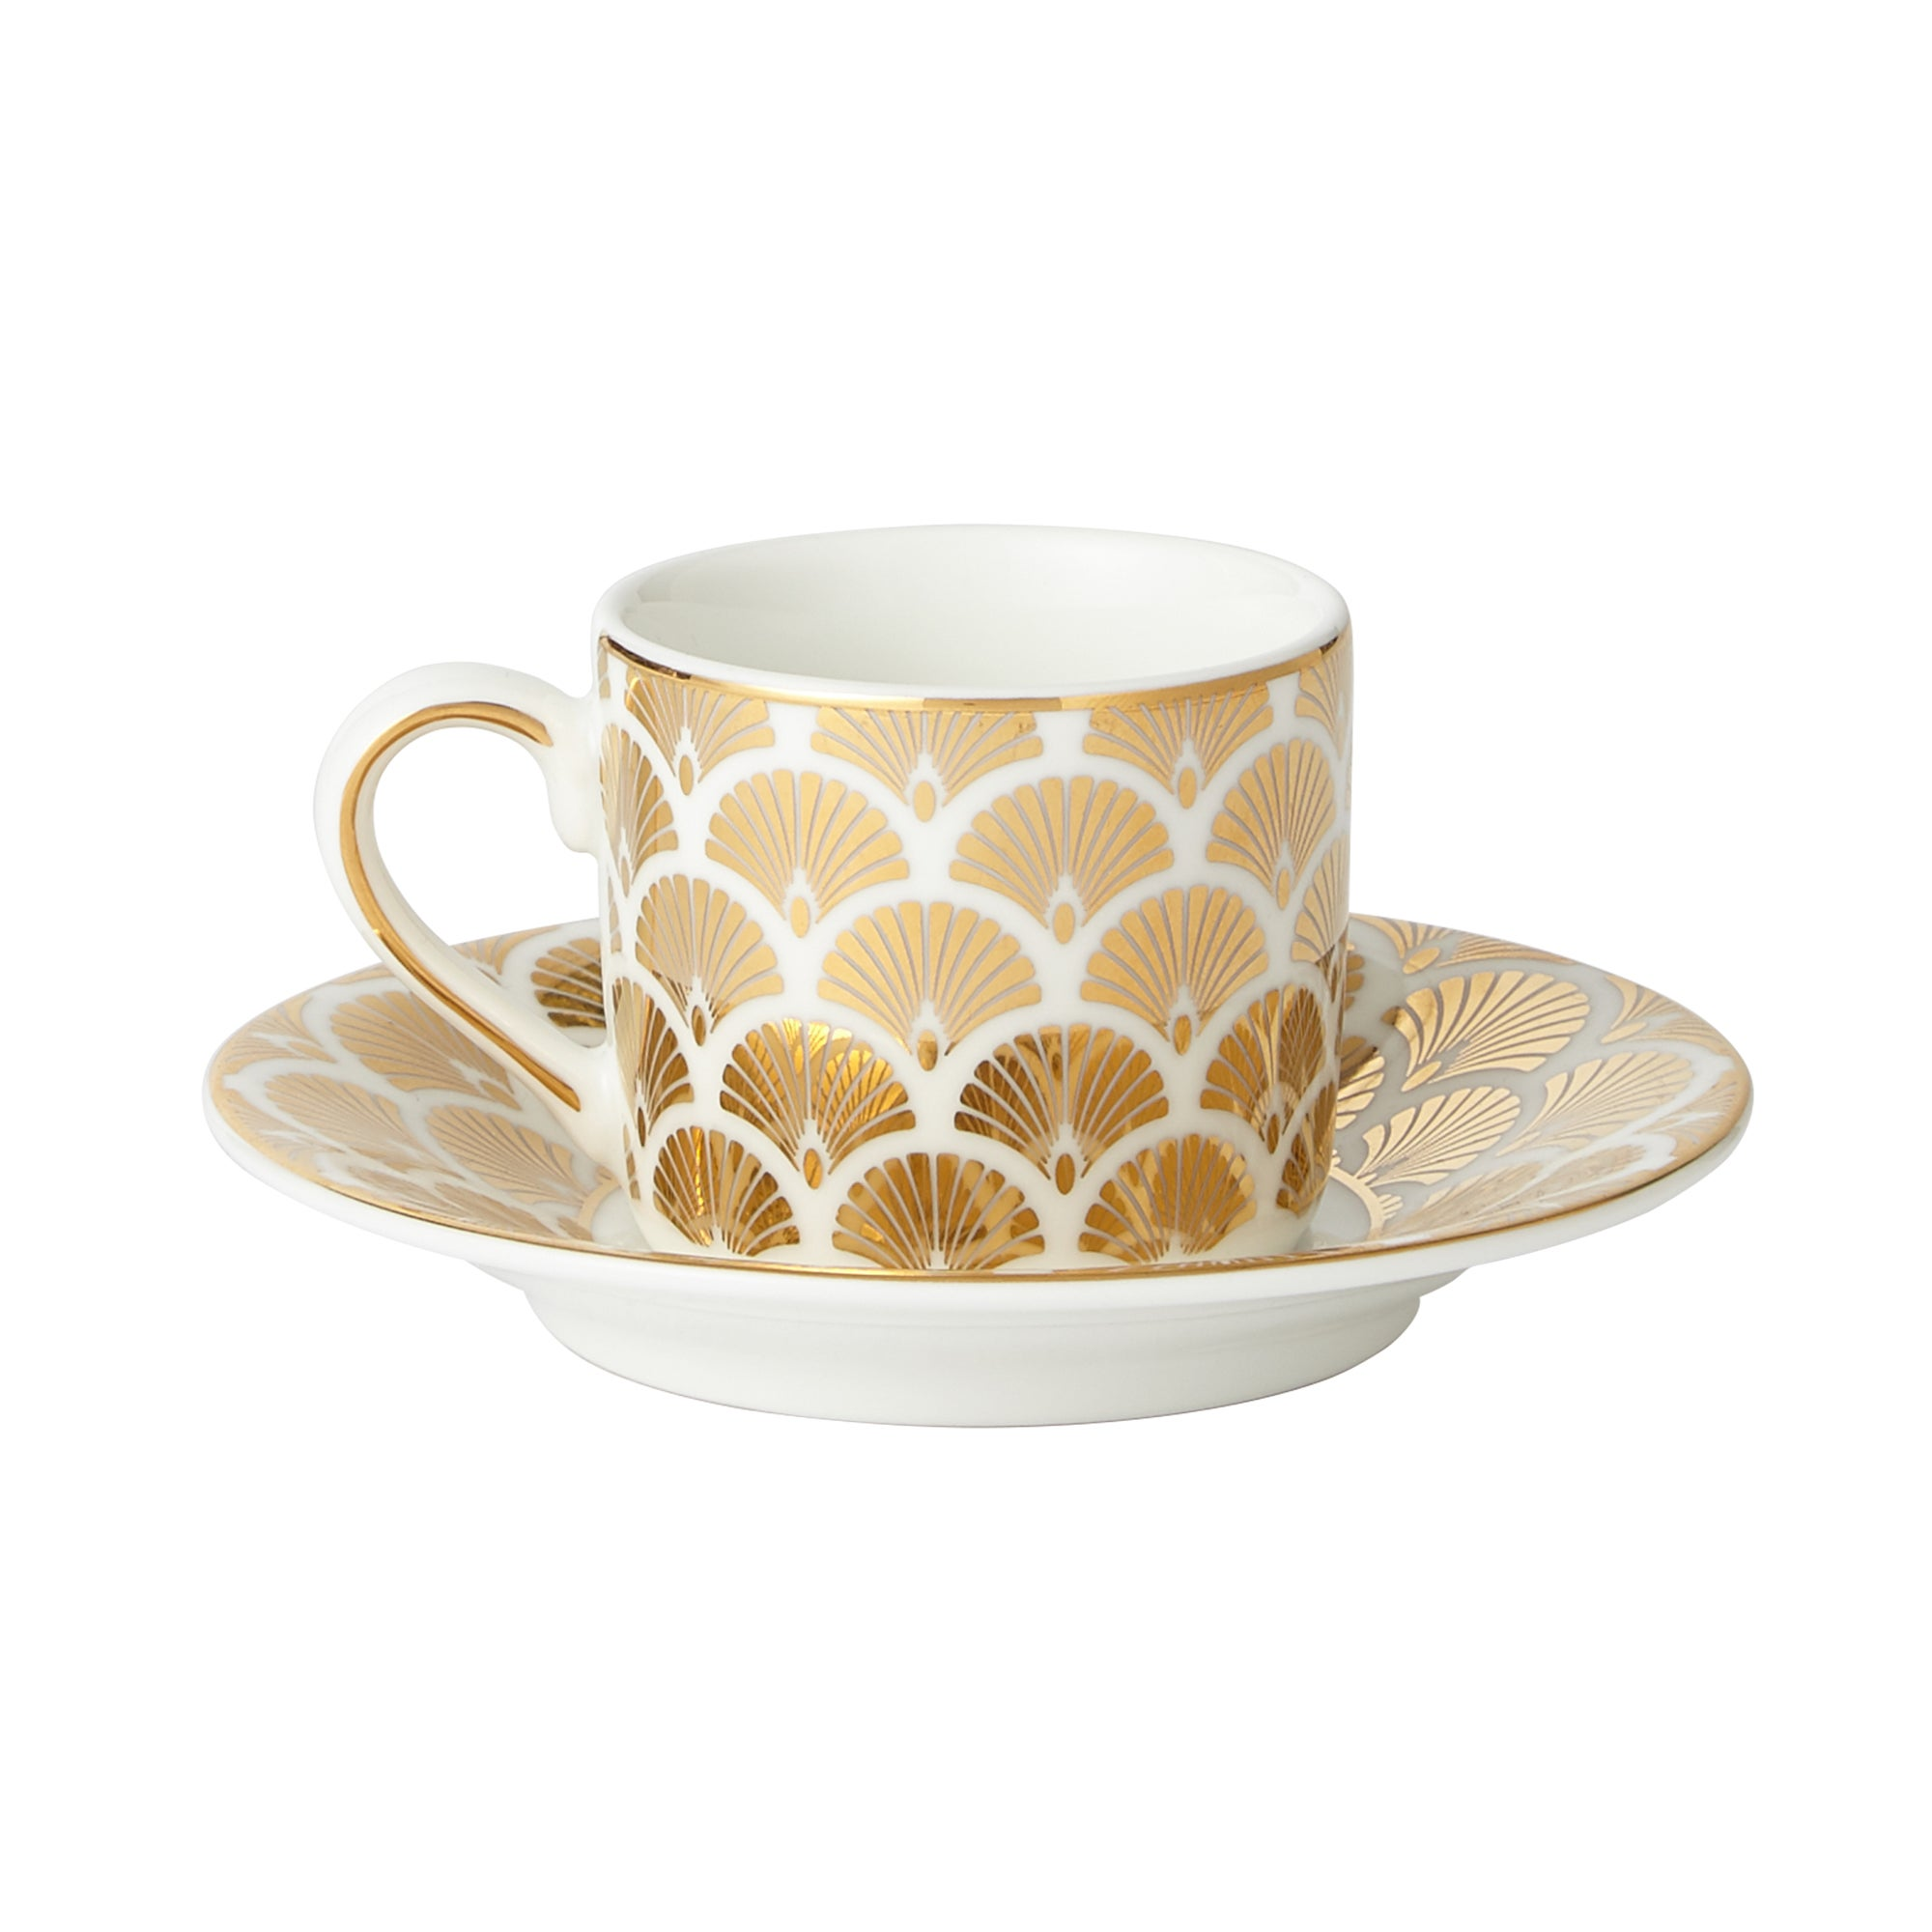 5A Fifth Avenue Bergen Gold Pack of 2 Espresso Cup and Saucer Gold